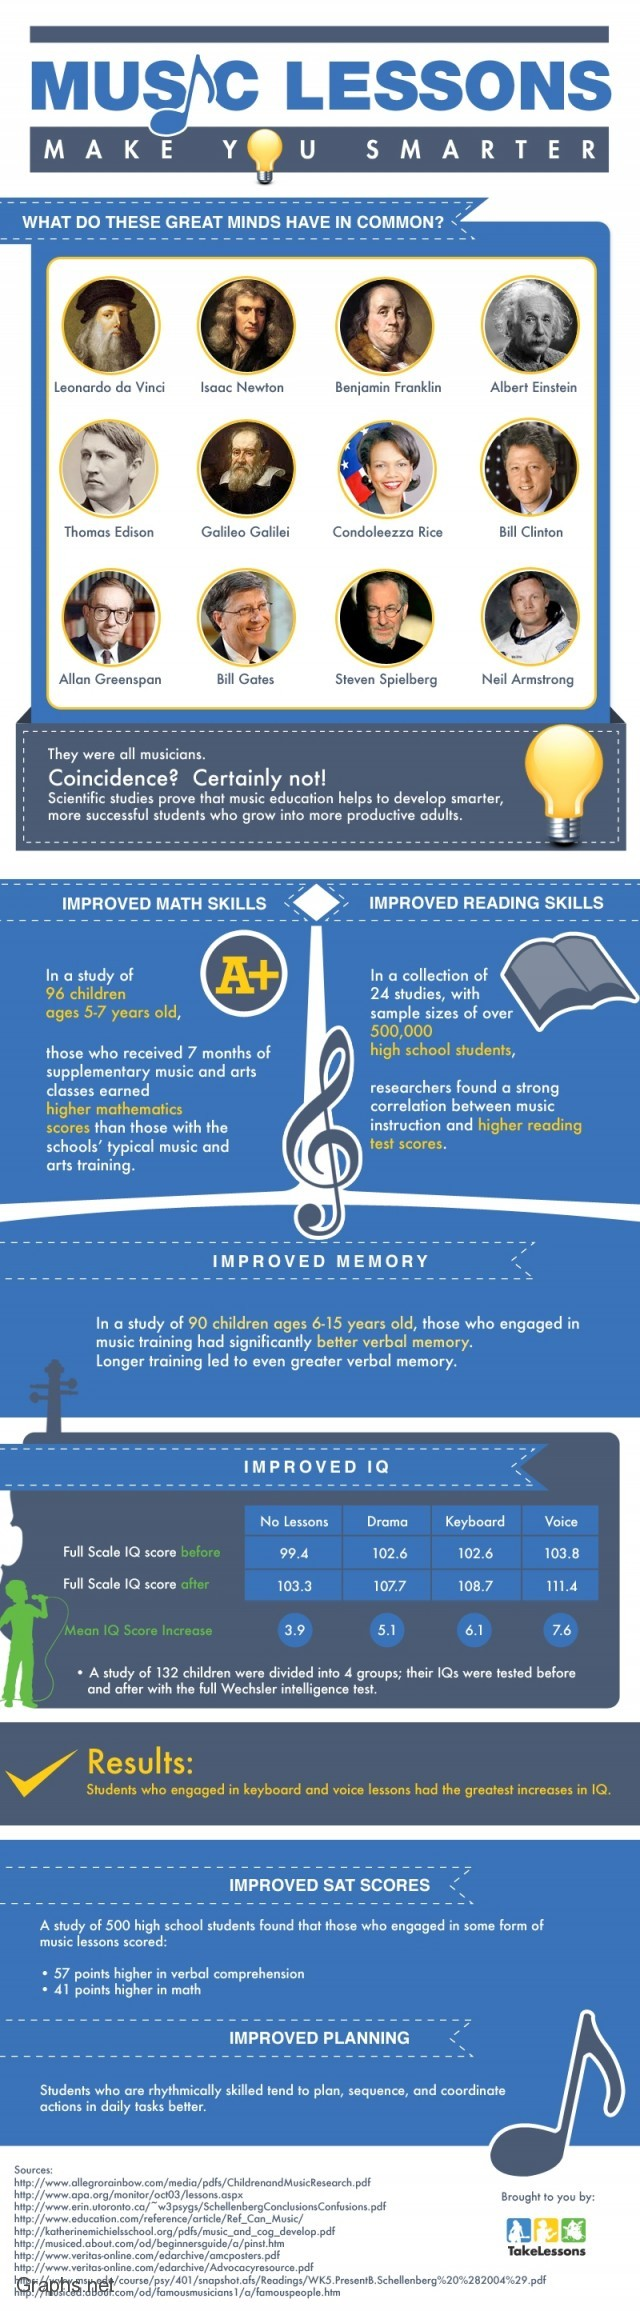 Music Lessons To Improve Memory and IQ